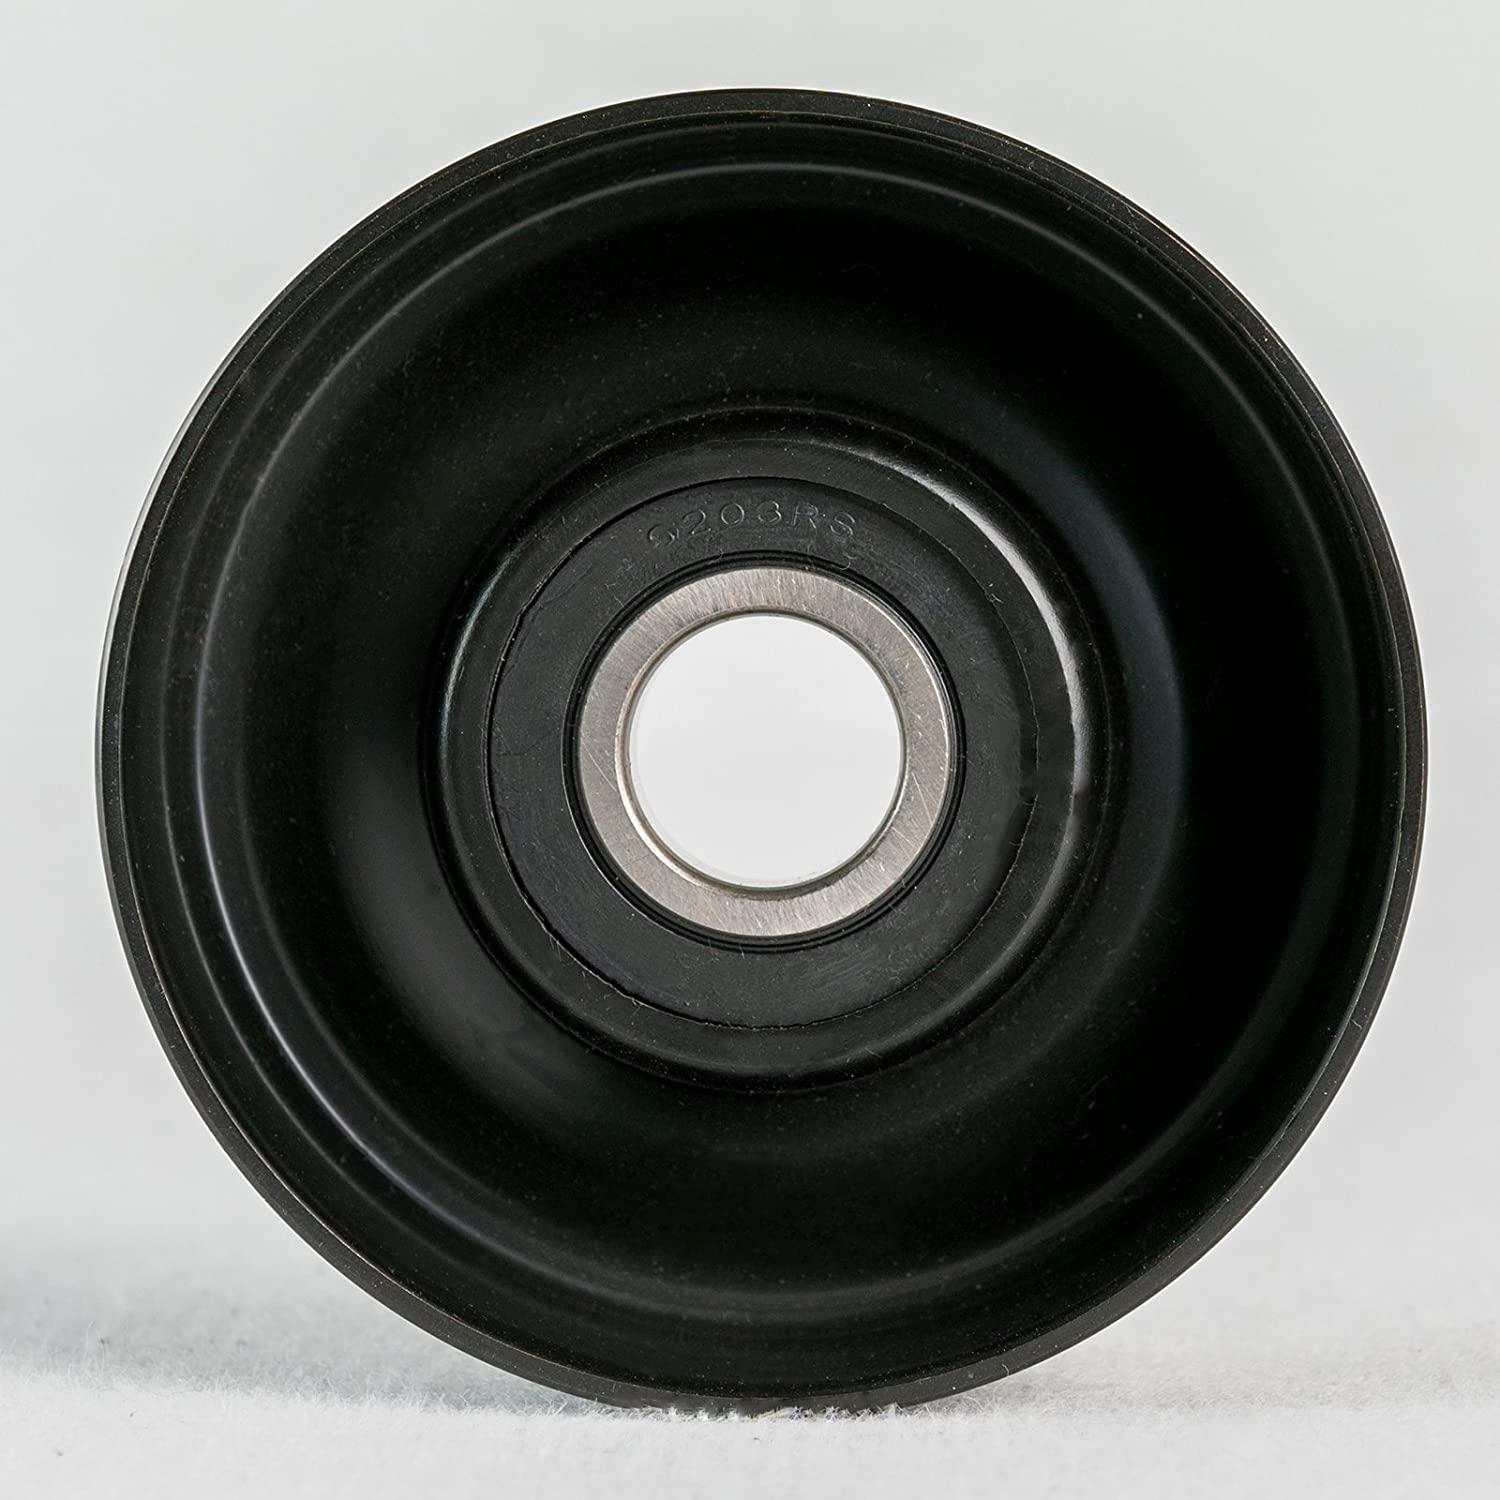 Nissan Chevrolet Isuzu Fit Belt Tensioner Pulley 38005 ALT TENSIONER Ford